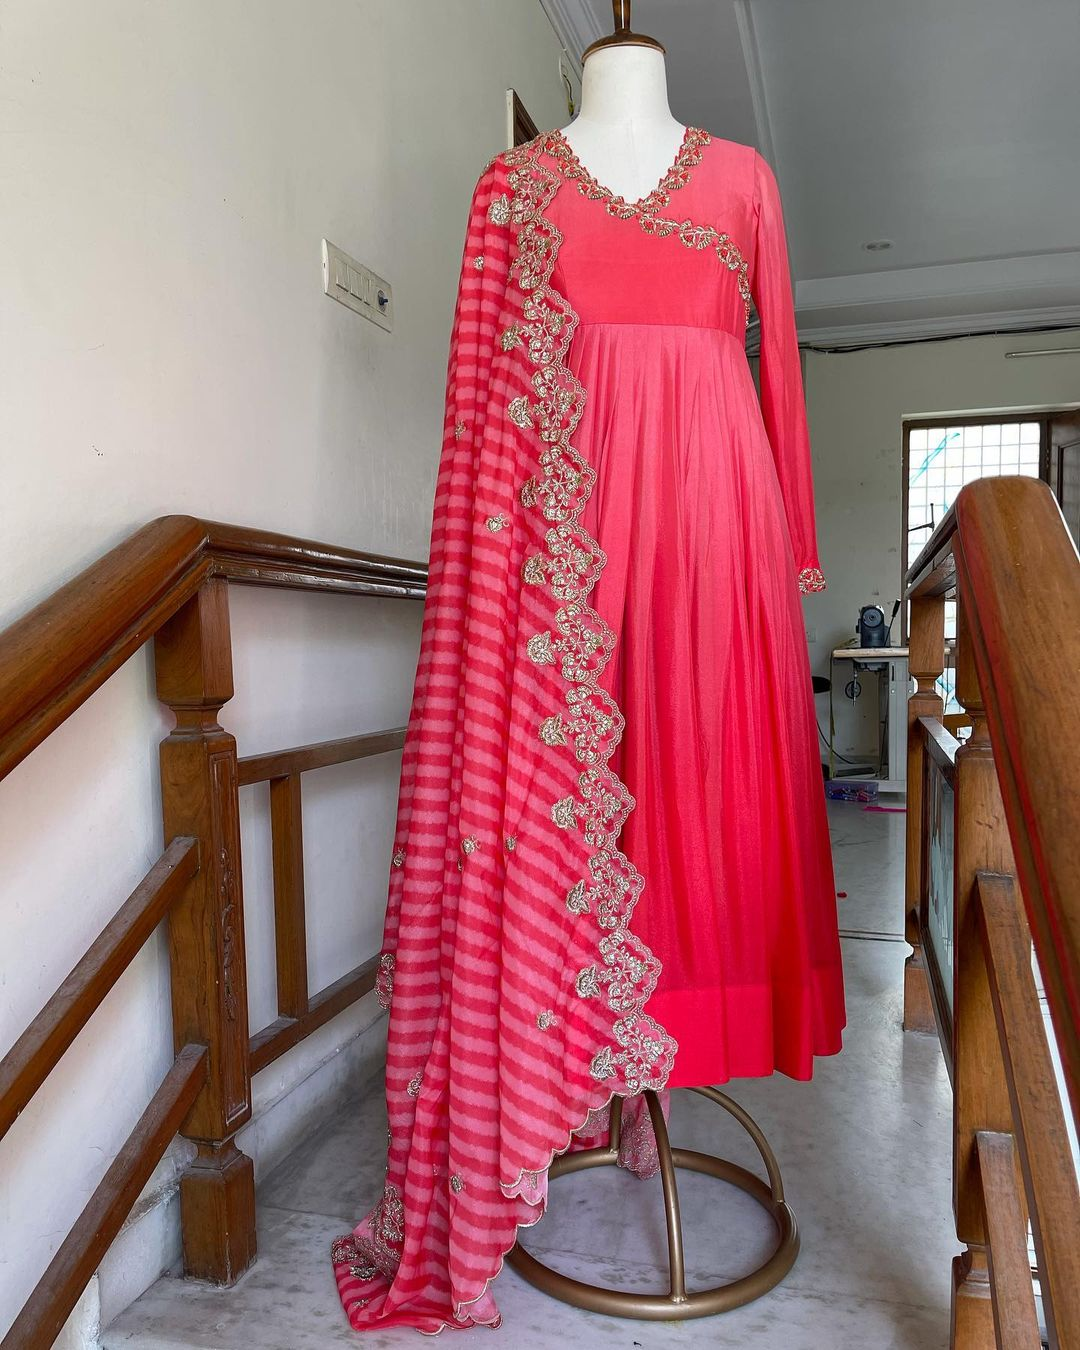 Gorgeous wrap style wrap style floor length long frock with cut work dupatta. Email for orders varunicouturehyd@gmail.com WhatsApp 9121017226. 2021-10-09